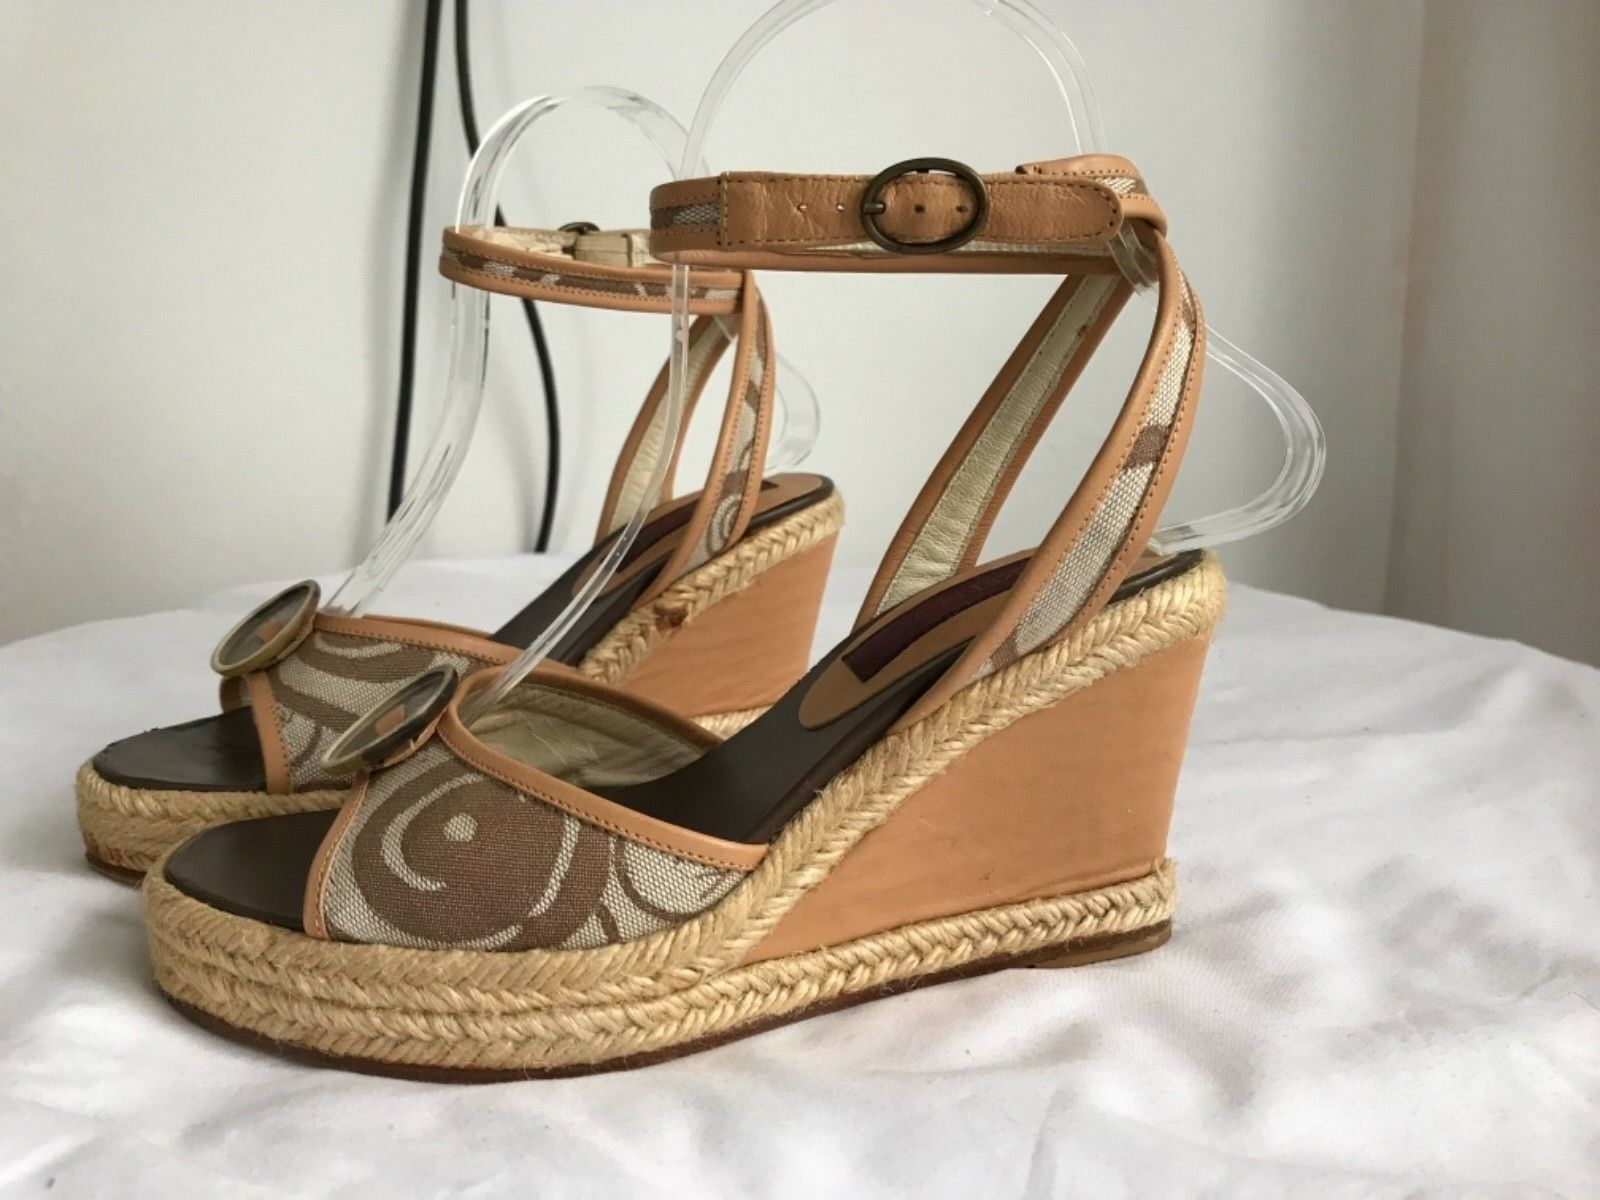 KENZO Rare Vintage Ankle Strap Wedge Espadrilles NEW Made in Spain US 6 EU 36